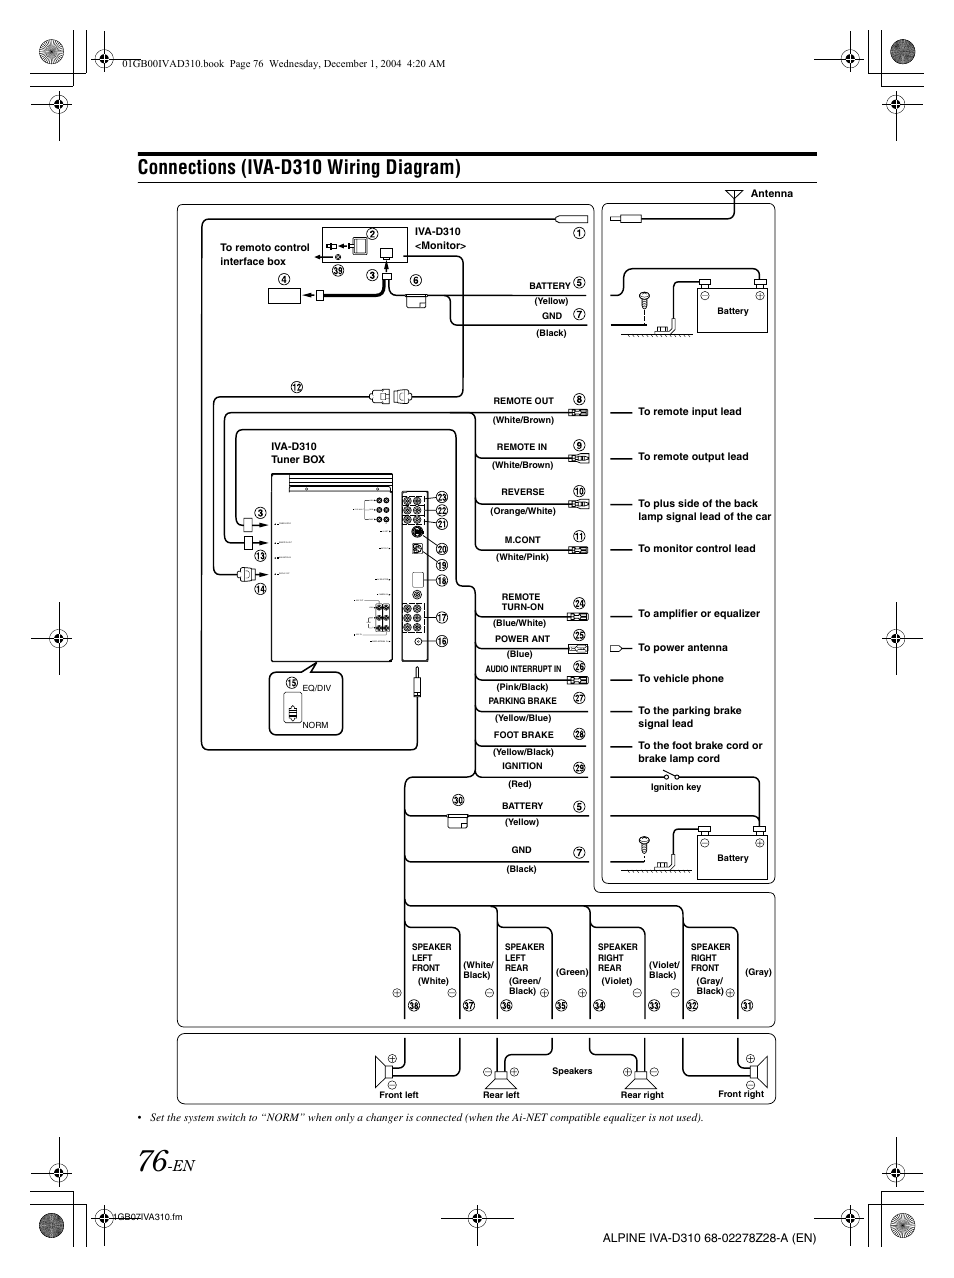 connections iva d310 wiring diagram alpine iva d310 user manual rh  manualsdir com